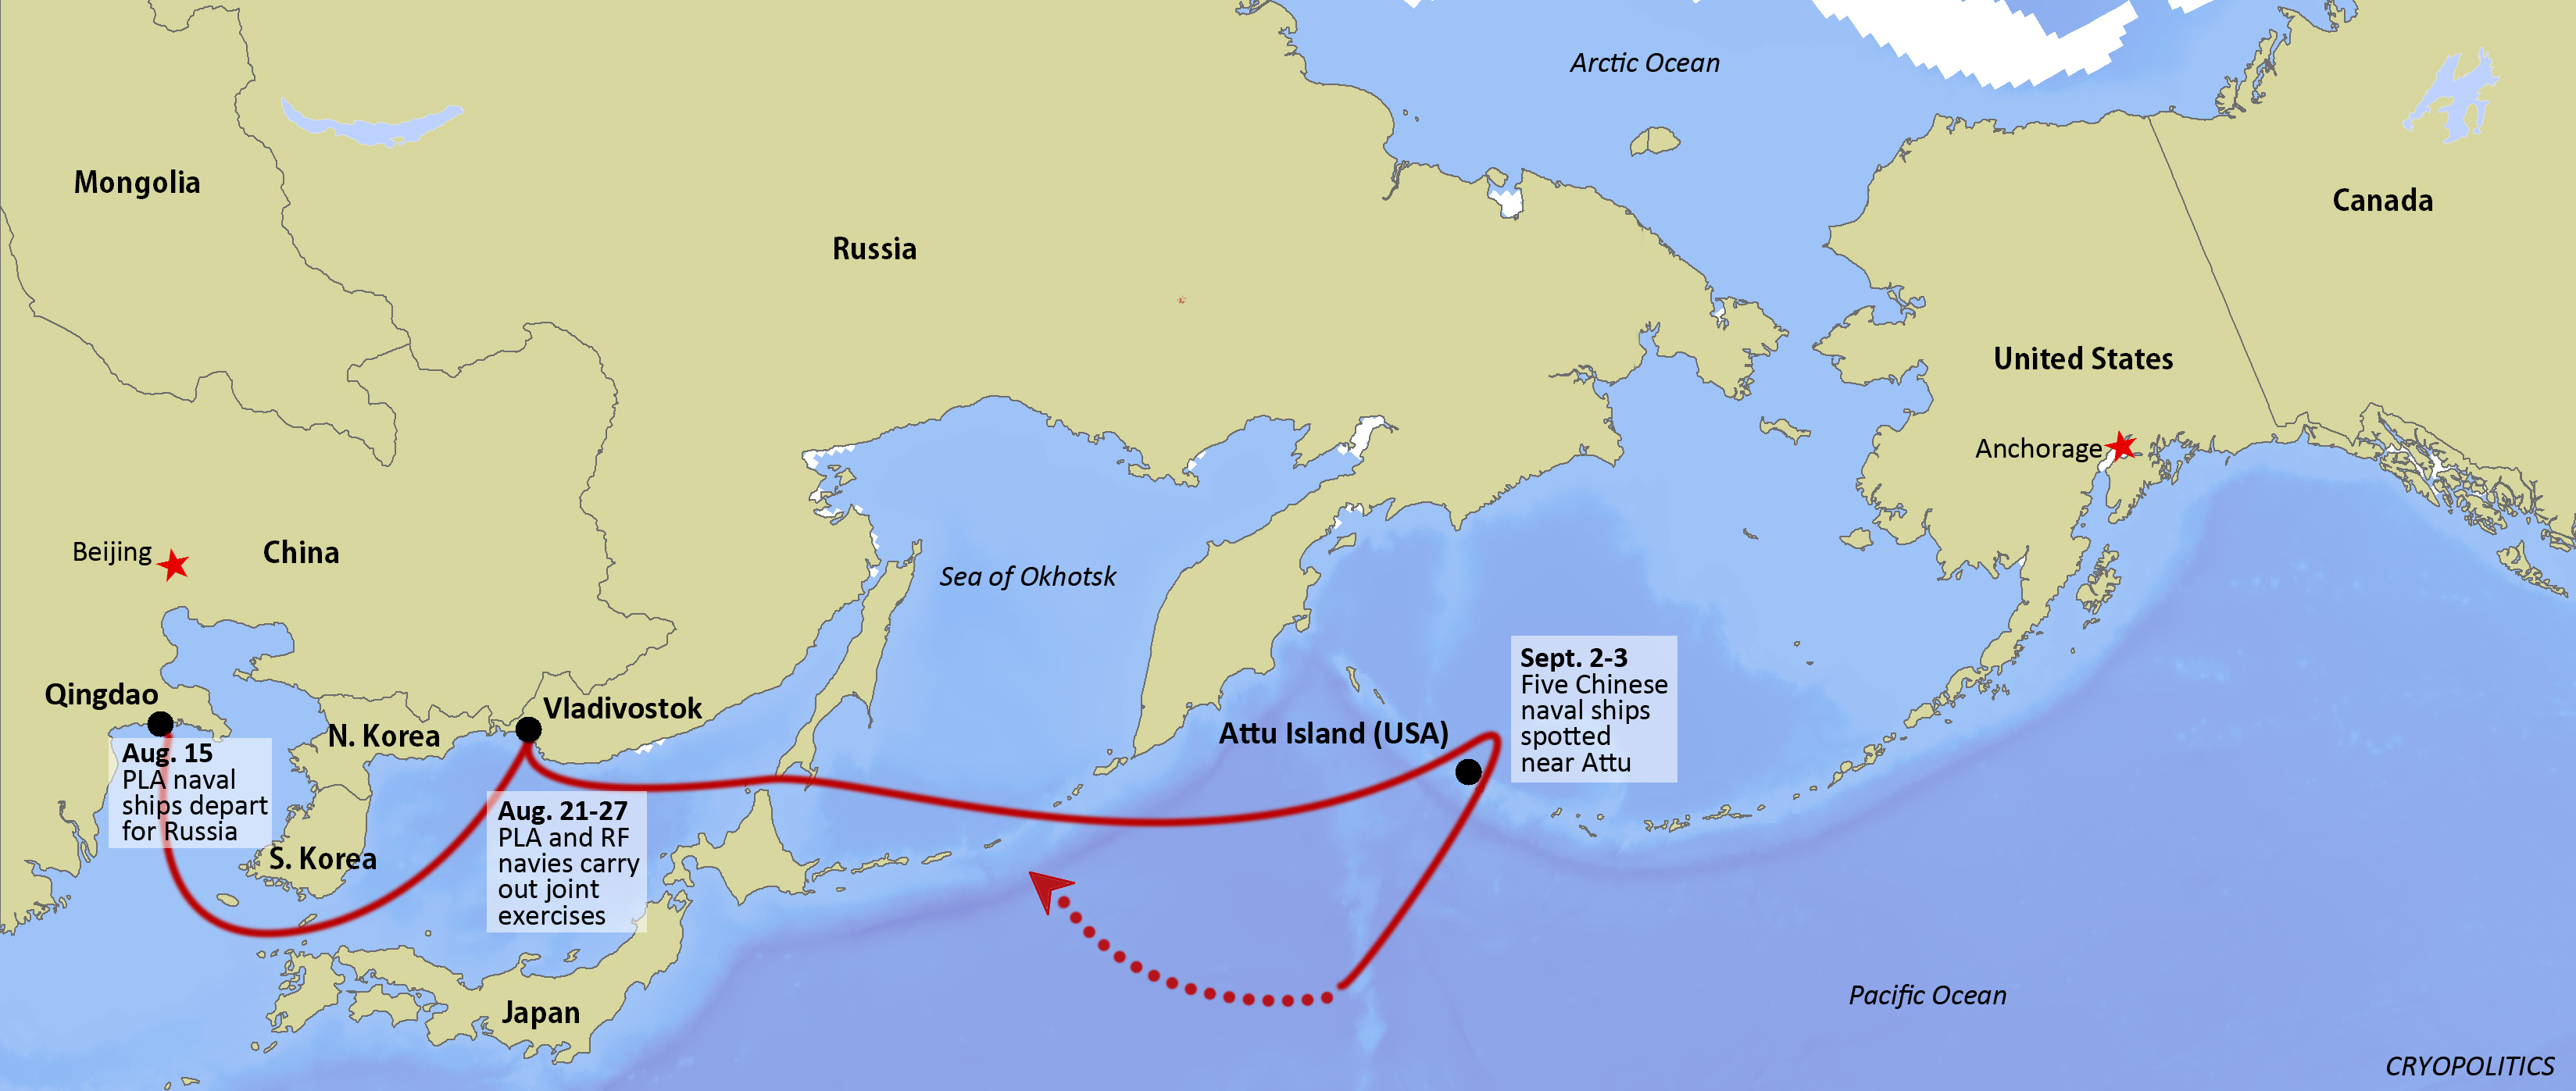 Chinese Naval Ships Near Aleutians Highlight History Of Asian - Us map in chinese